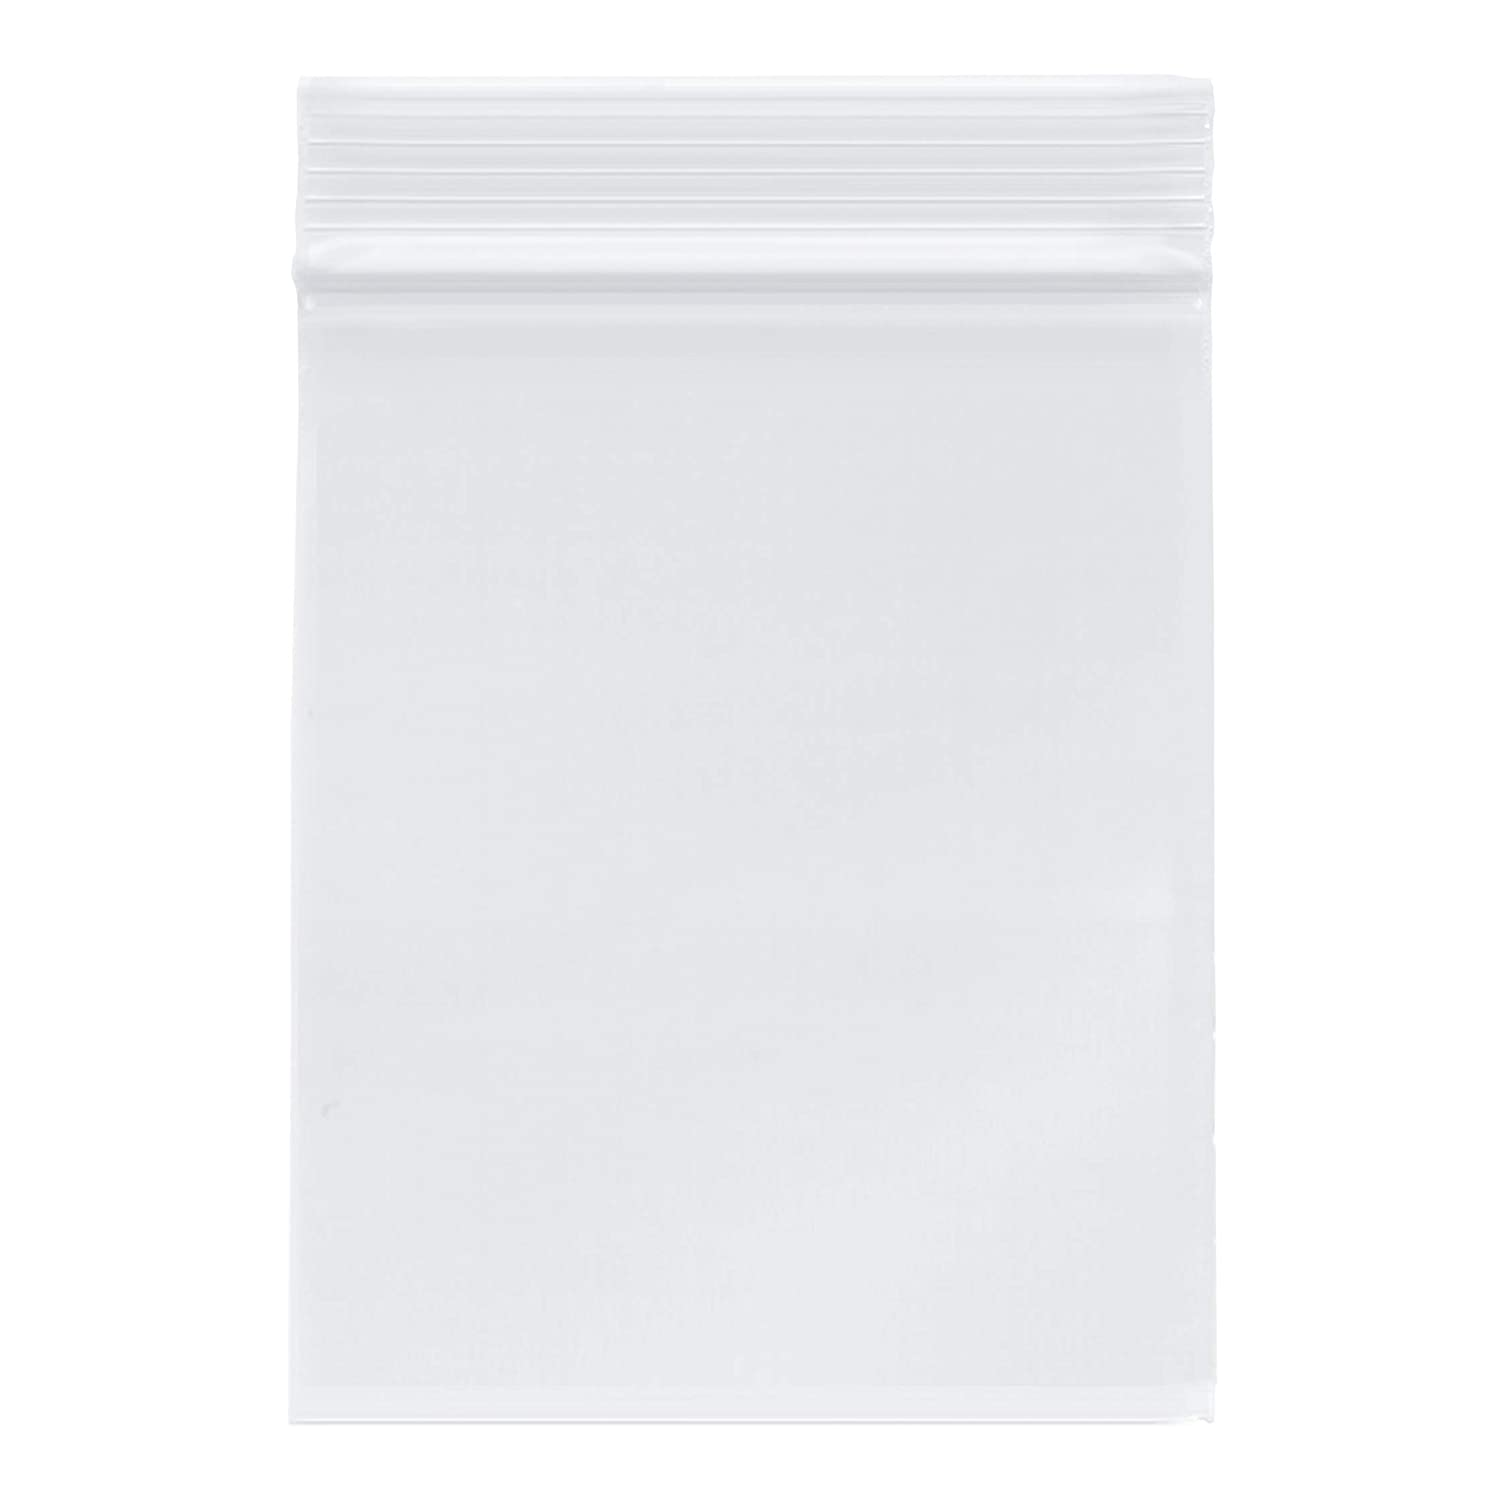 "Plymor Zipper Reclosable Plastic Bags, 2 Mil, 4"" x 5"" (Case of 1000)"